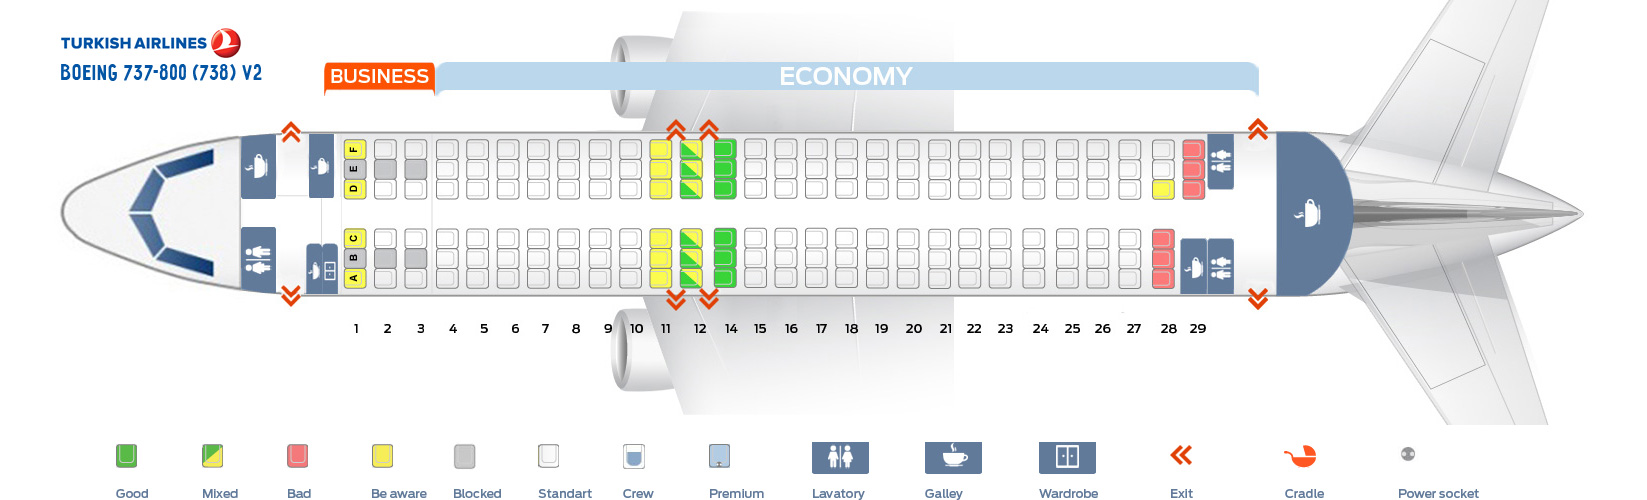 Seat Map Boeing 737 800 Turkish Airlines Best Seats In